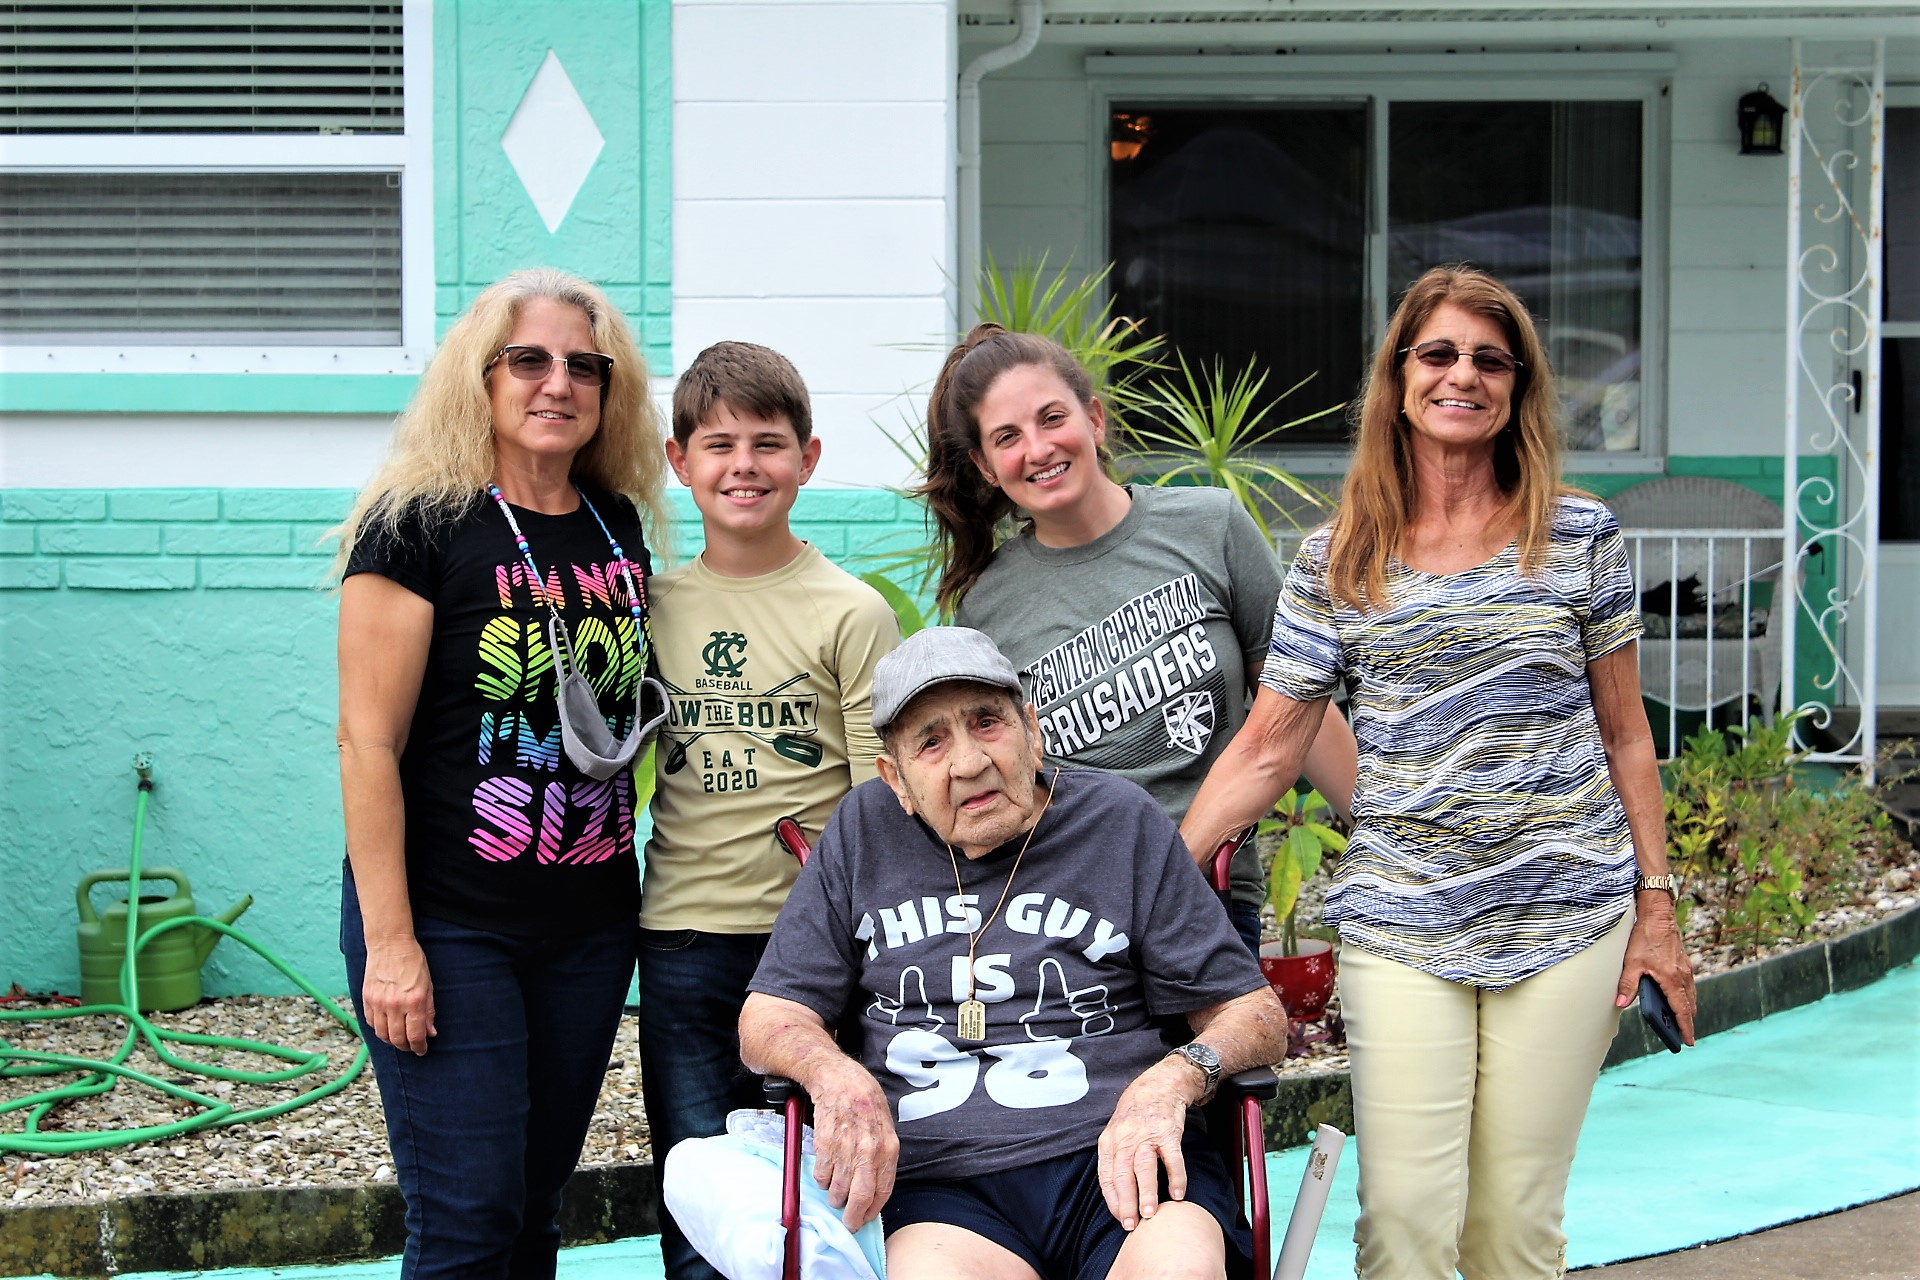 Sylvio Cucuruto, surrounded by family on his 98th birthday, in front of his Gulfport home. They arranged for the Gulfport Police Department and the Gulfport Fire Rescue to do a celebratory drive-by. From left with him are daughter Carole, great-grandson Logan, granddaughter Breanna and daughter Sylvia.